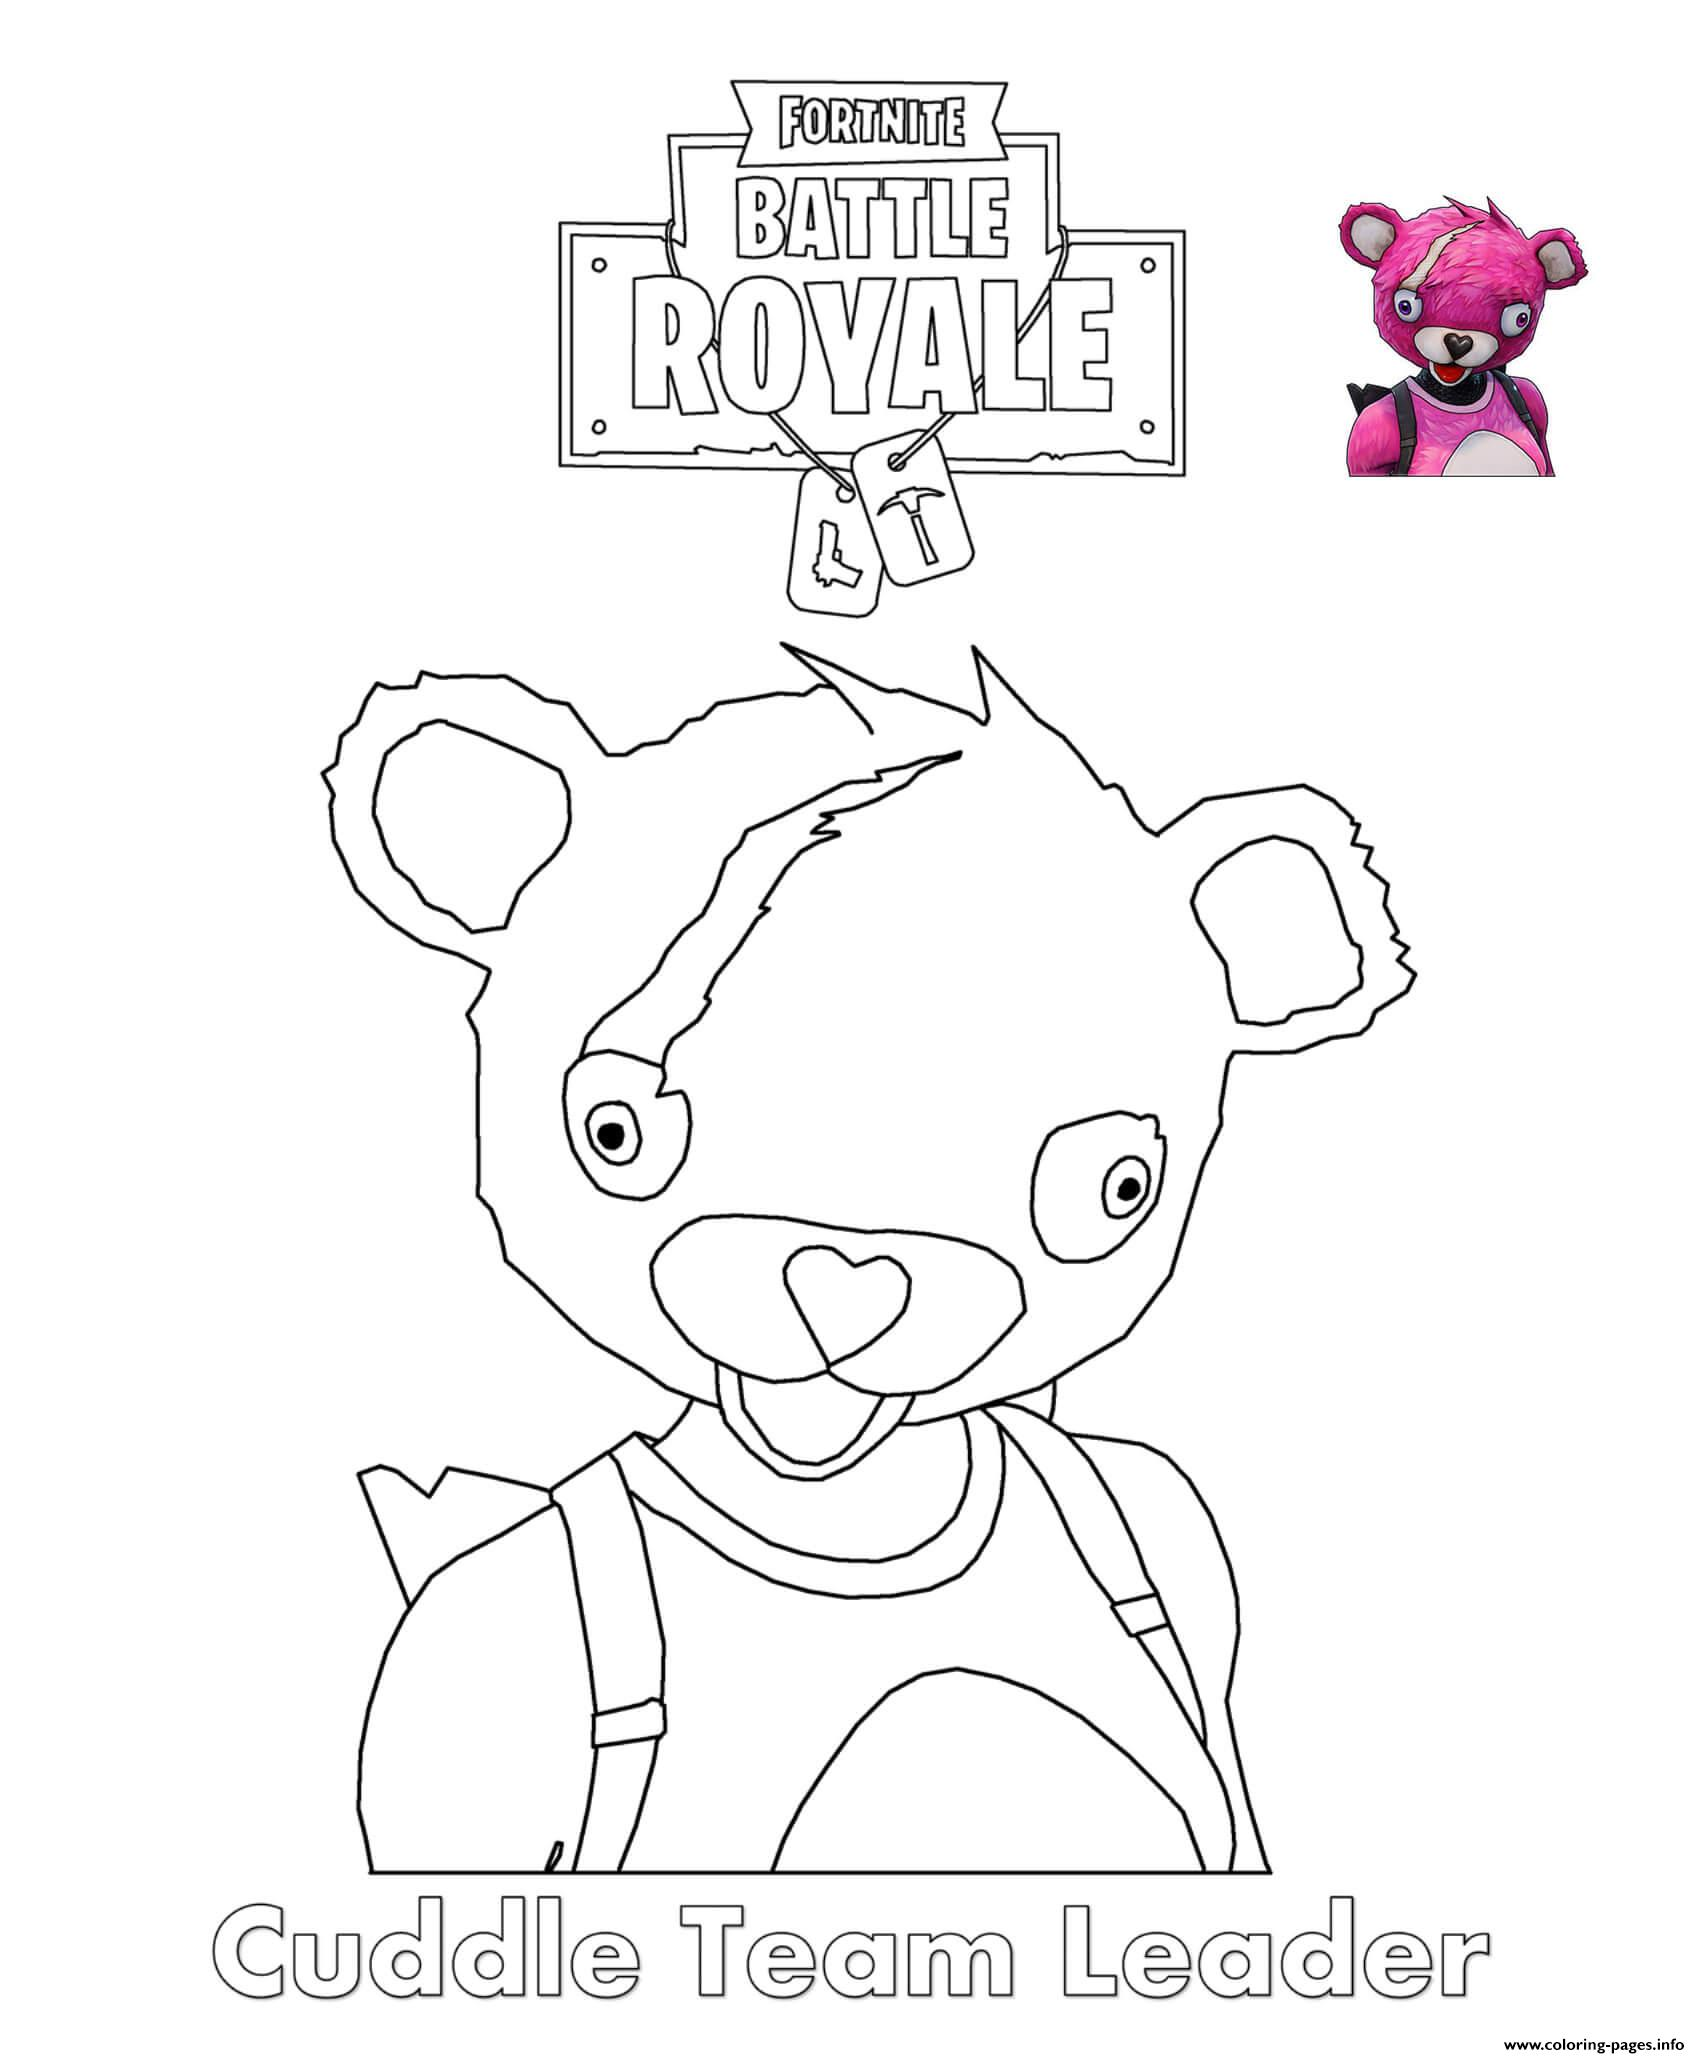 Cuddle Team Leader Fortnite coloring pages